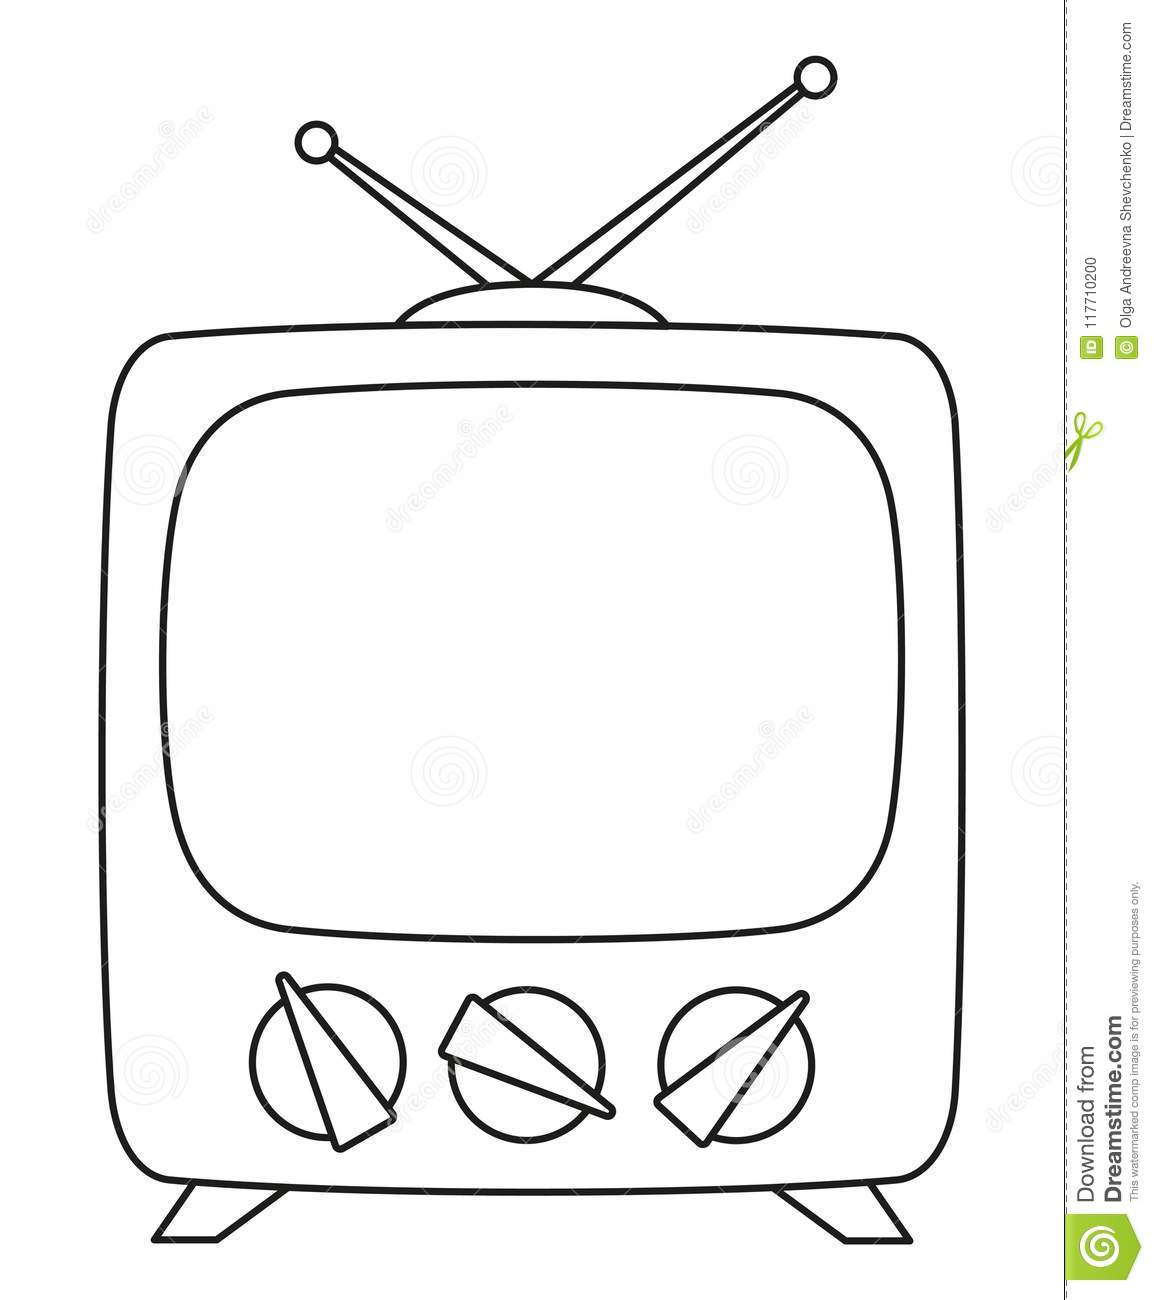 Line Art Black And White Retro Television Stock Illustration ...